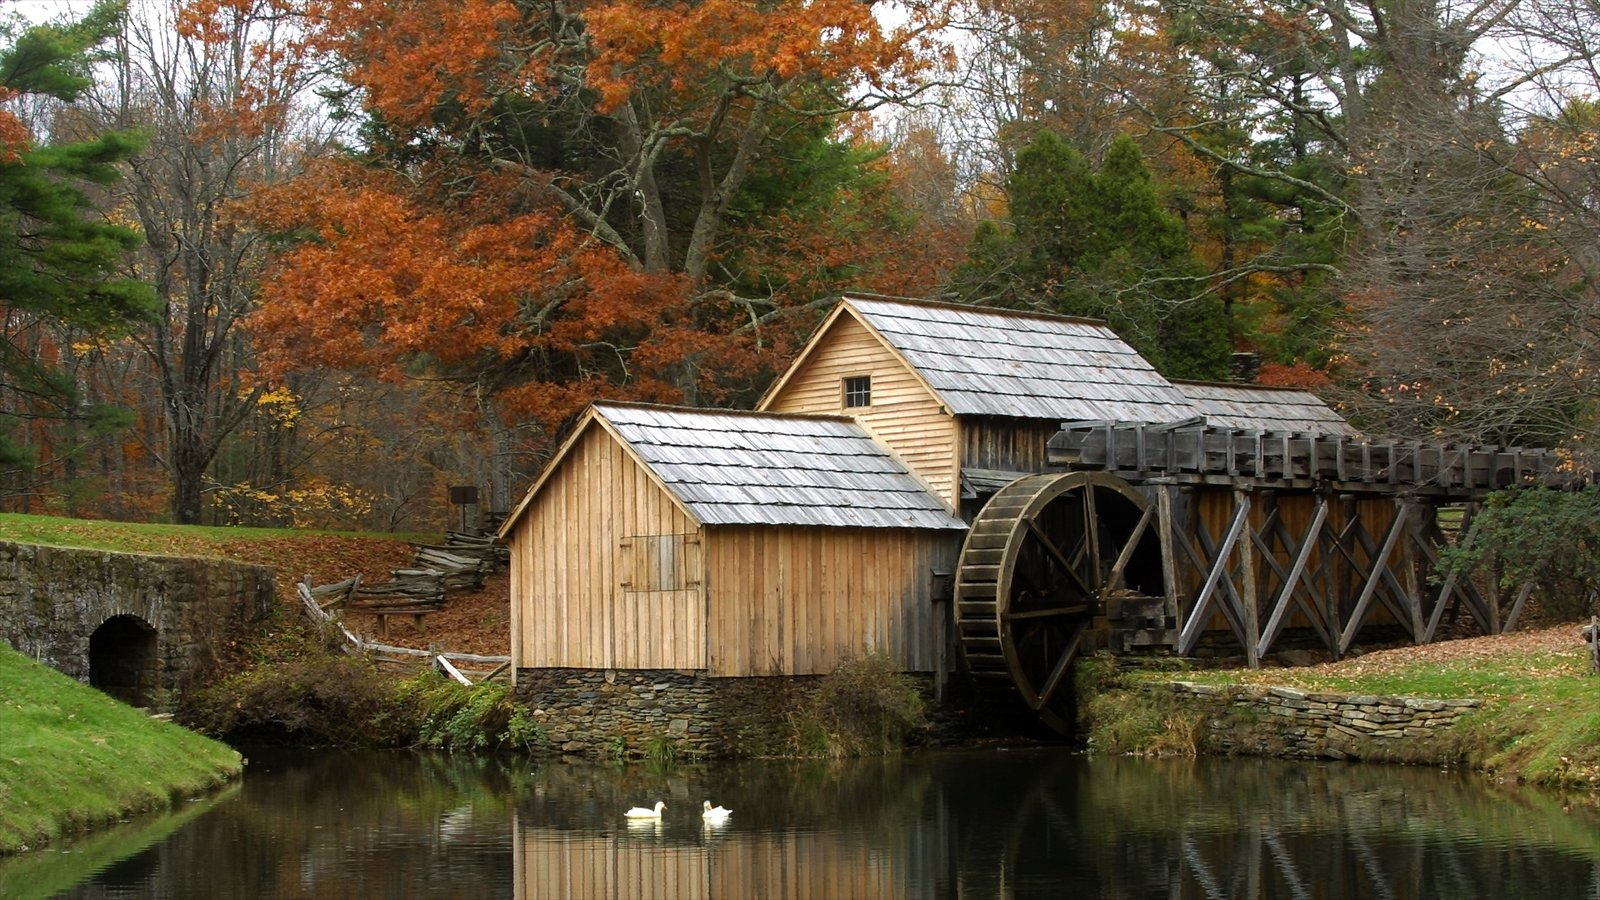 Virginia featuring tranquil scenes and a river or creek